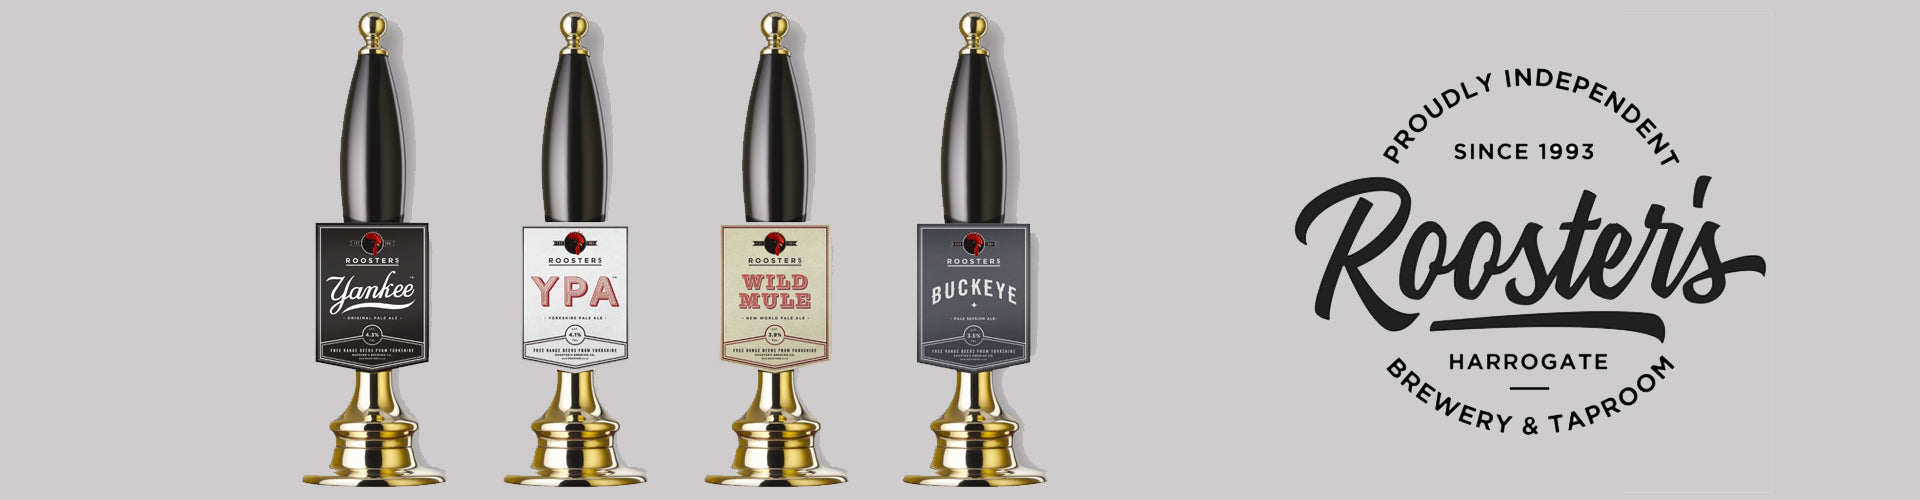 Four Angram Beer Pumps with Rooster's Beer Pump Clips Attached